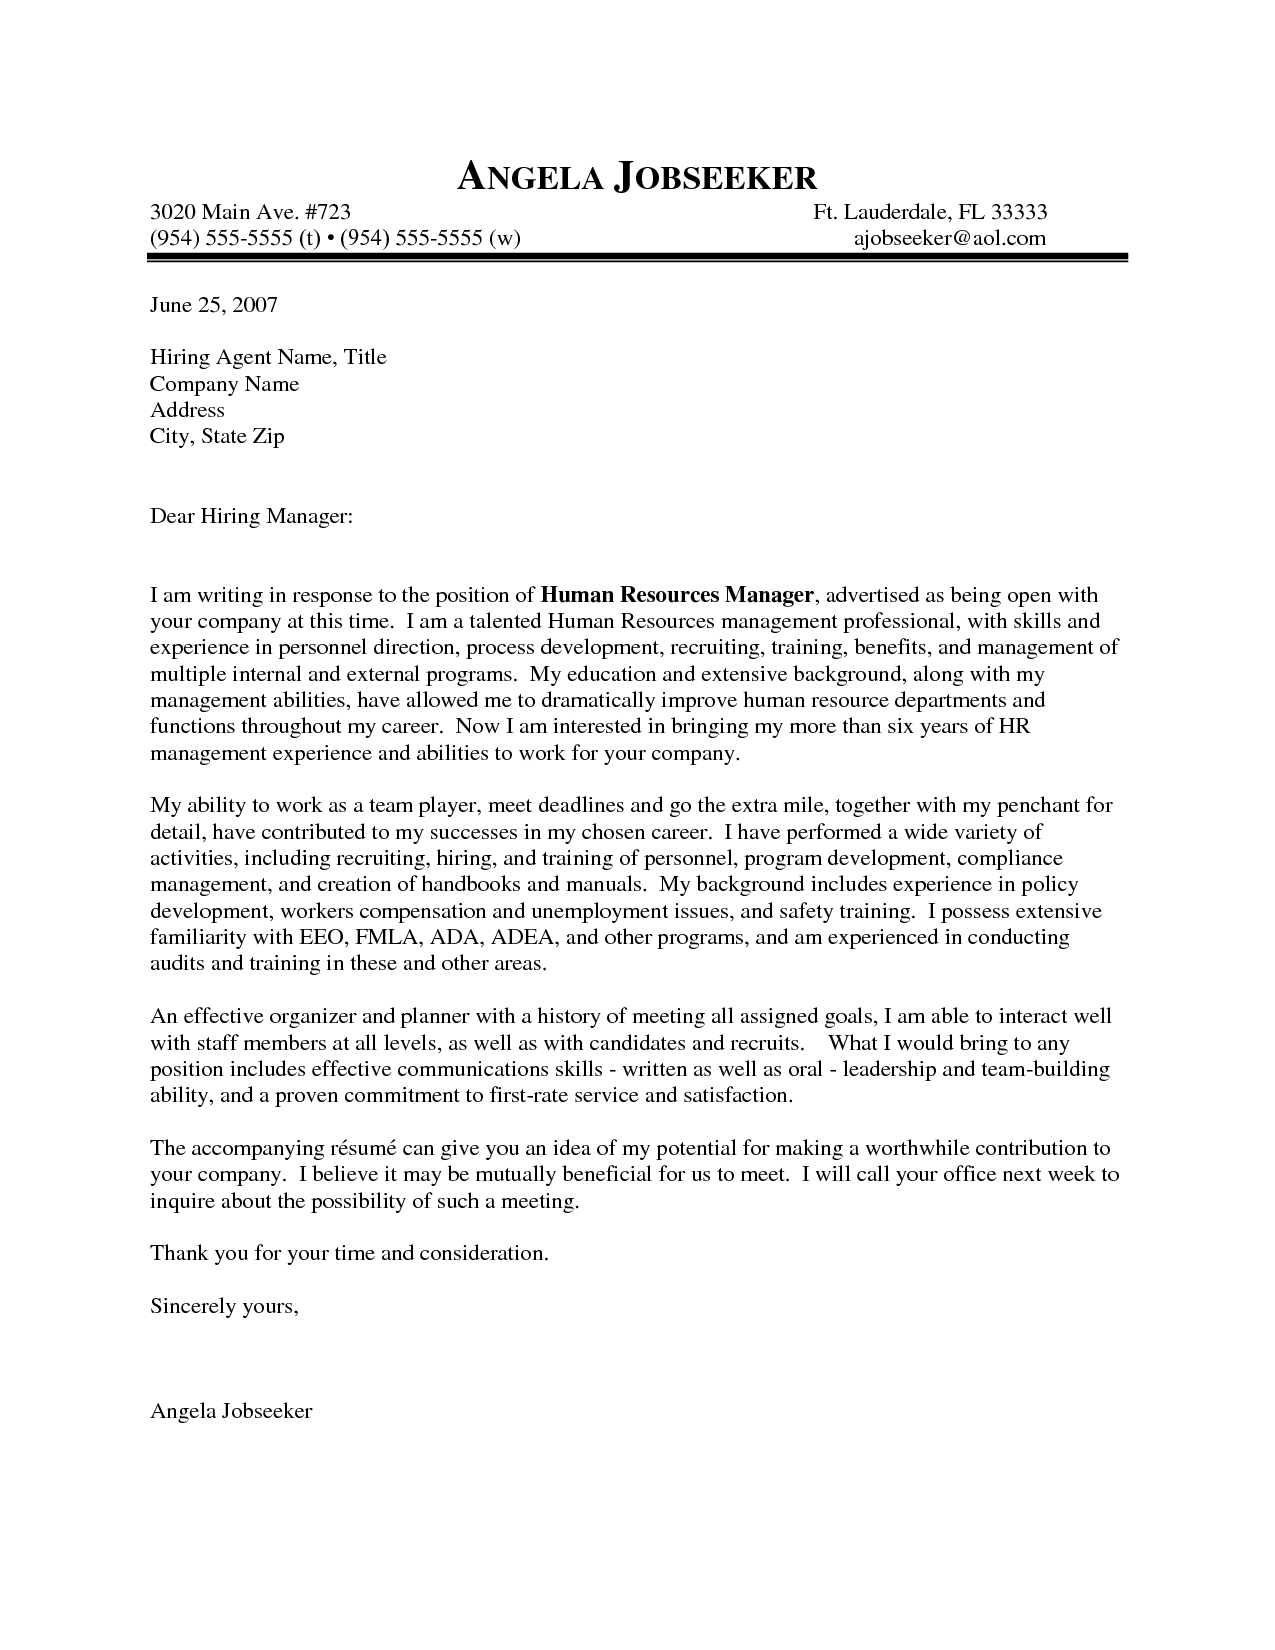 Superb Outstanding Cover Letter Examples | HR Manager Cover Letter Example